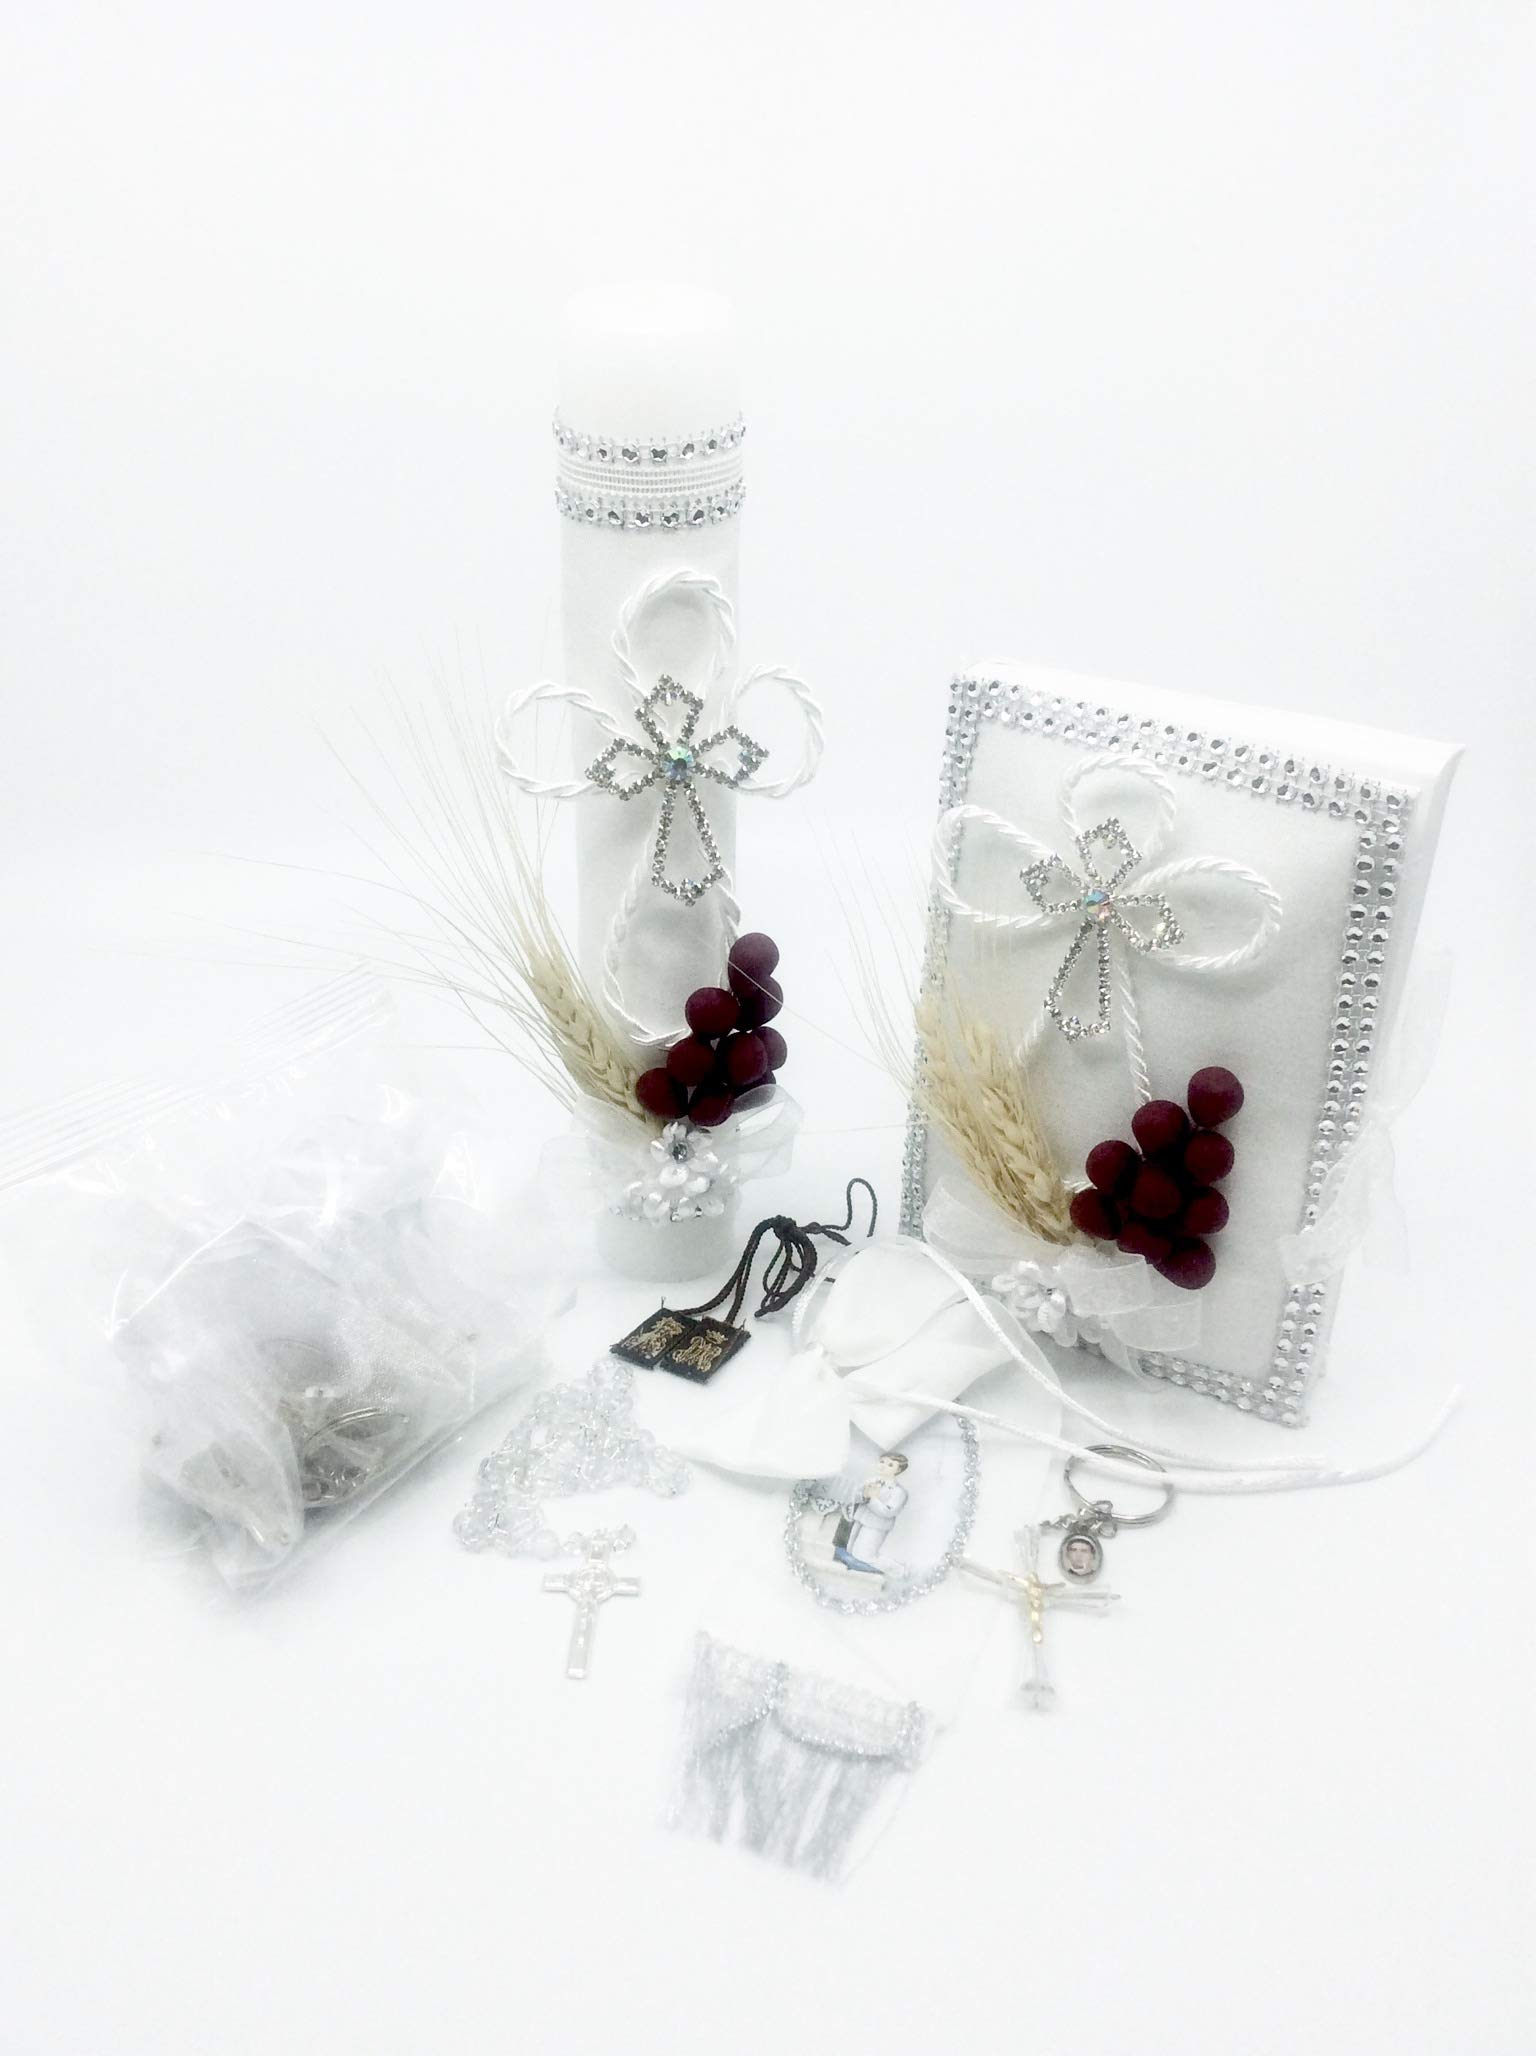 Casa Ixta First Communion Candle Set for Boy with Grapes Detail